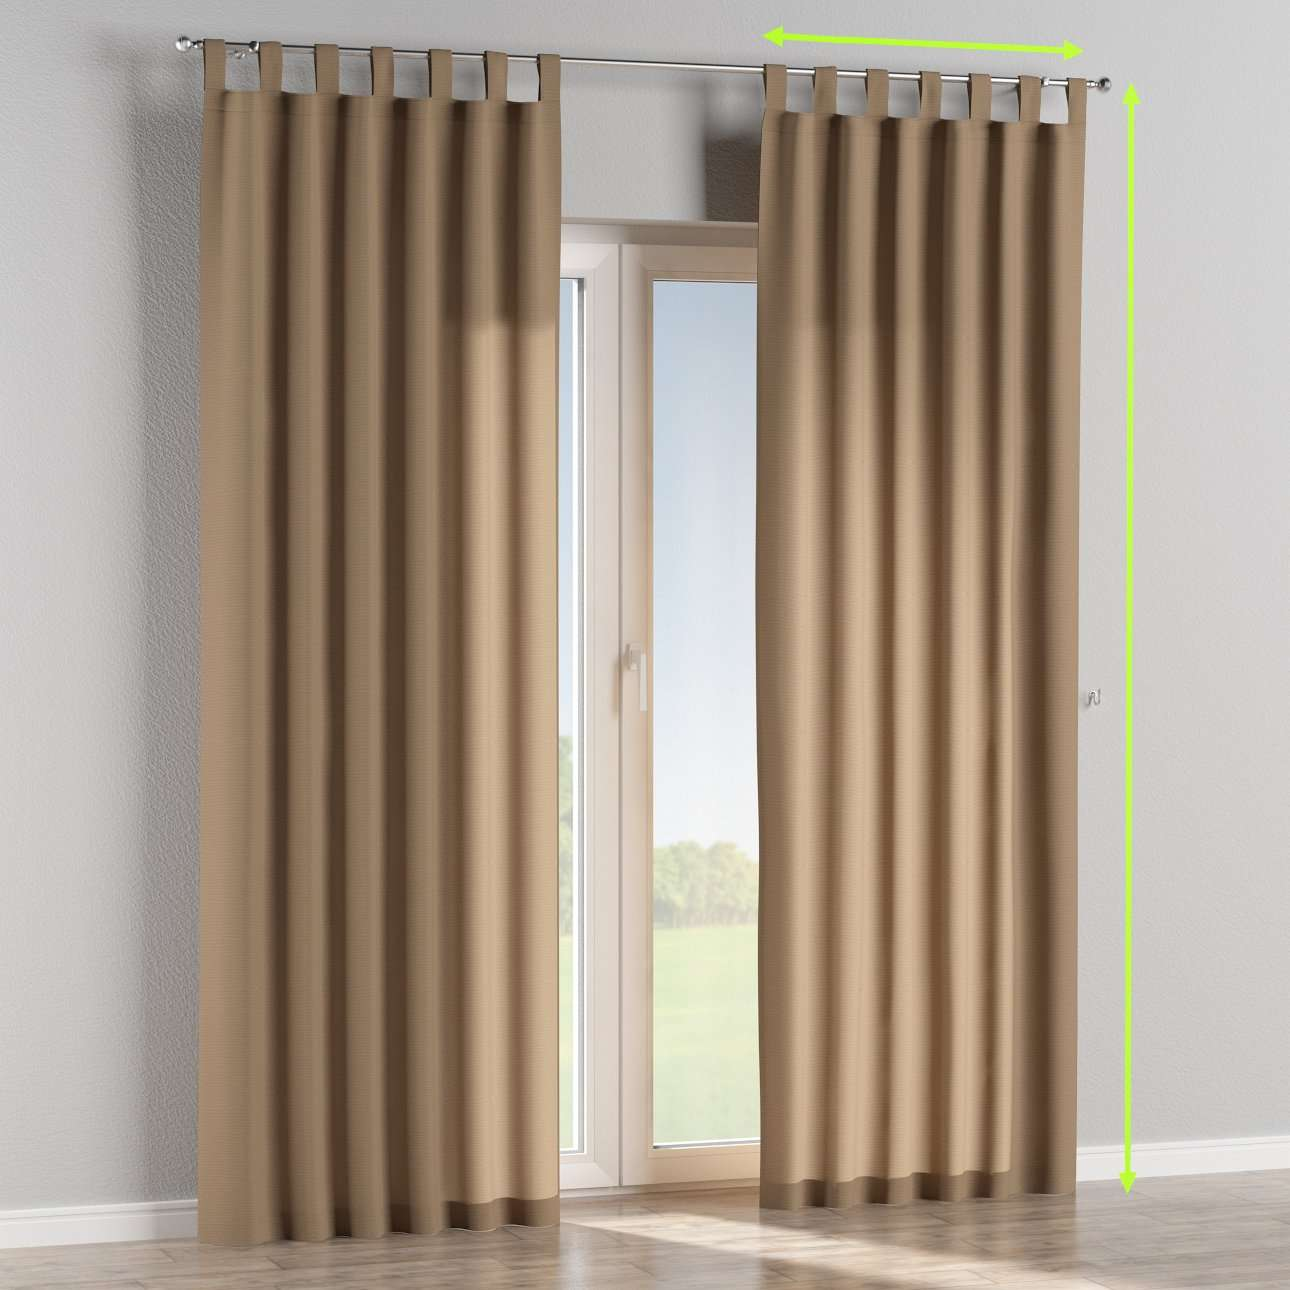 Tab top curtains in collection Quadro, fabric: 136-09